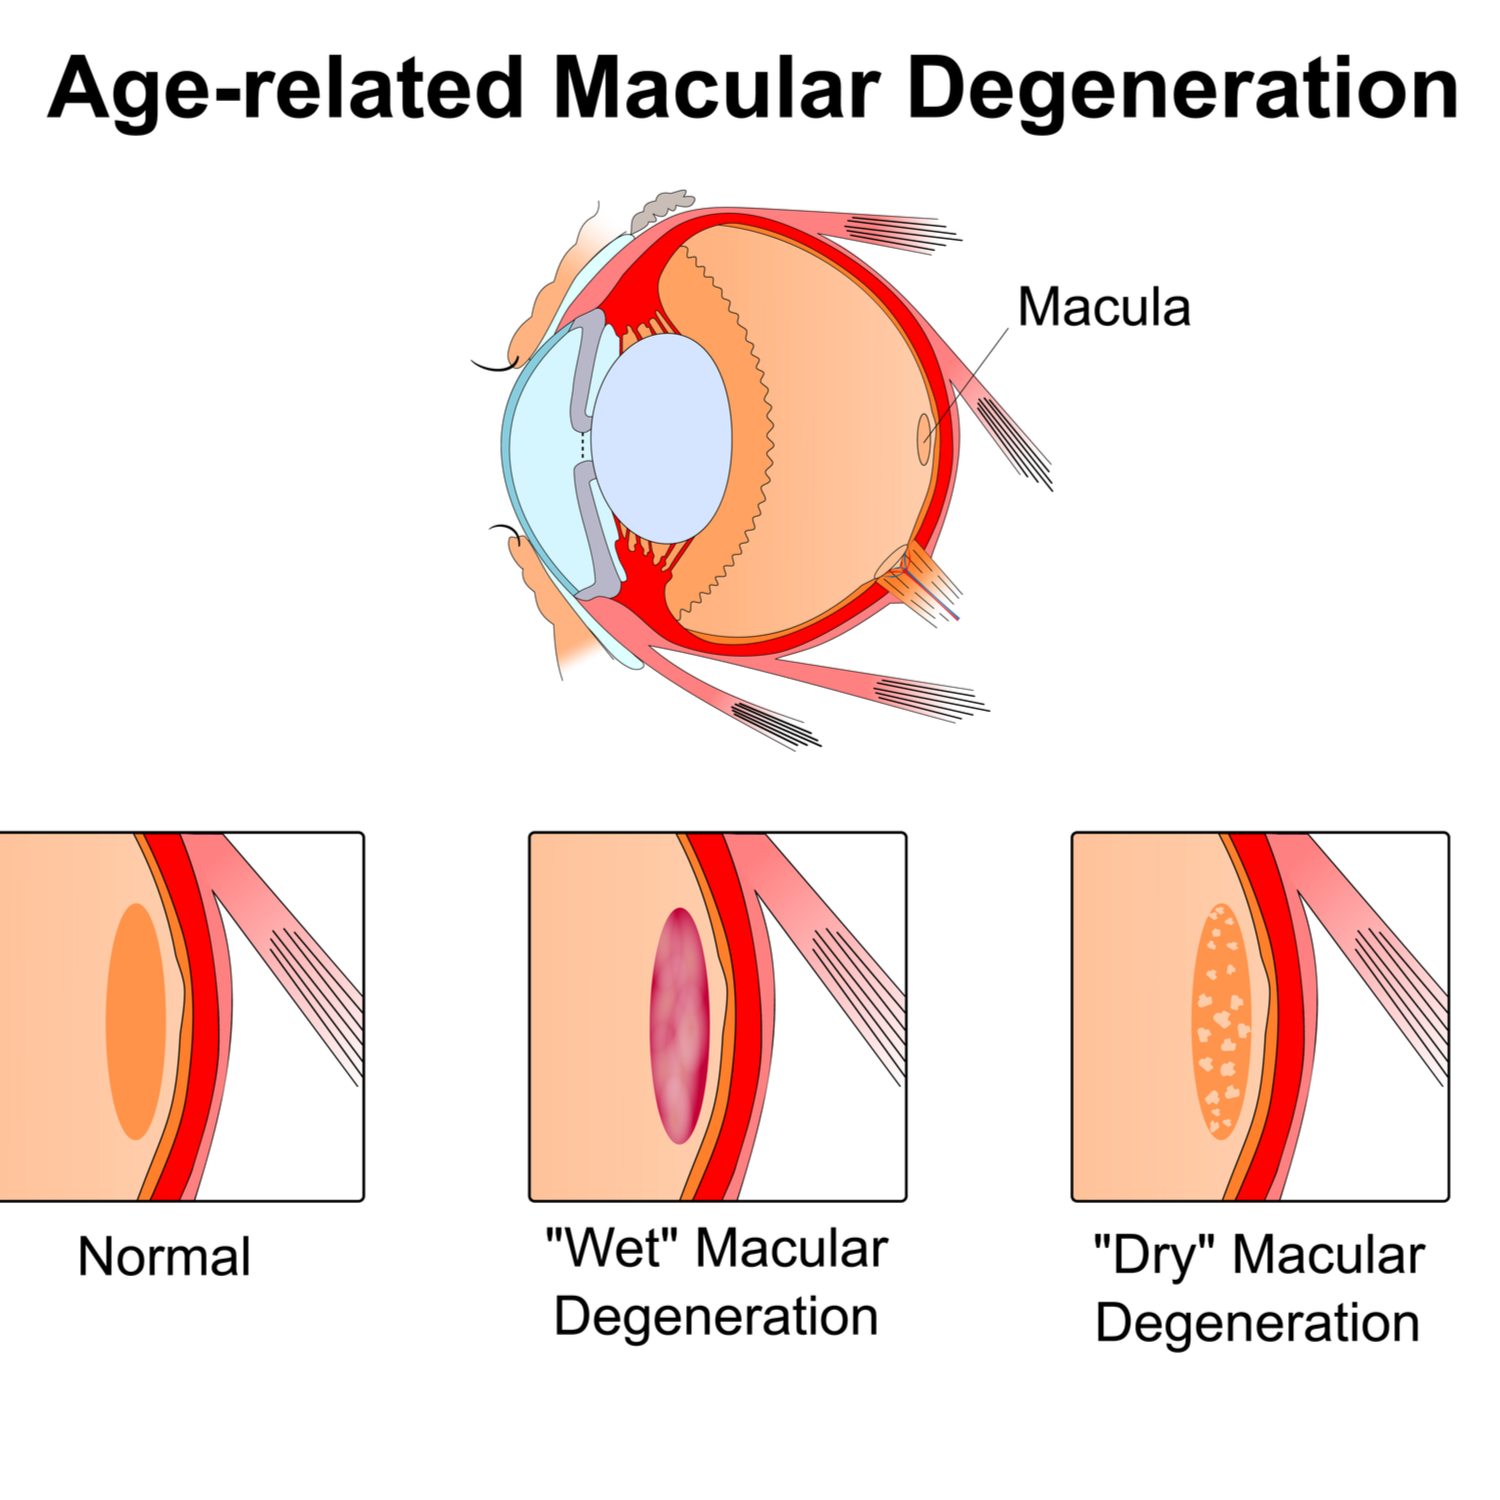 Diagnosing and Care for Macular Degeneration